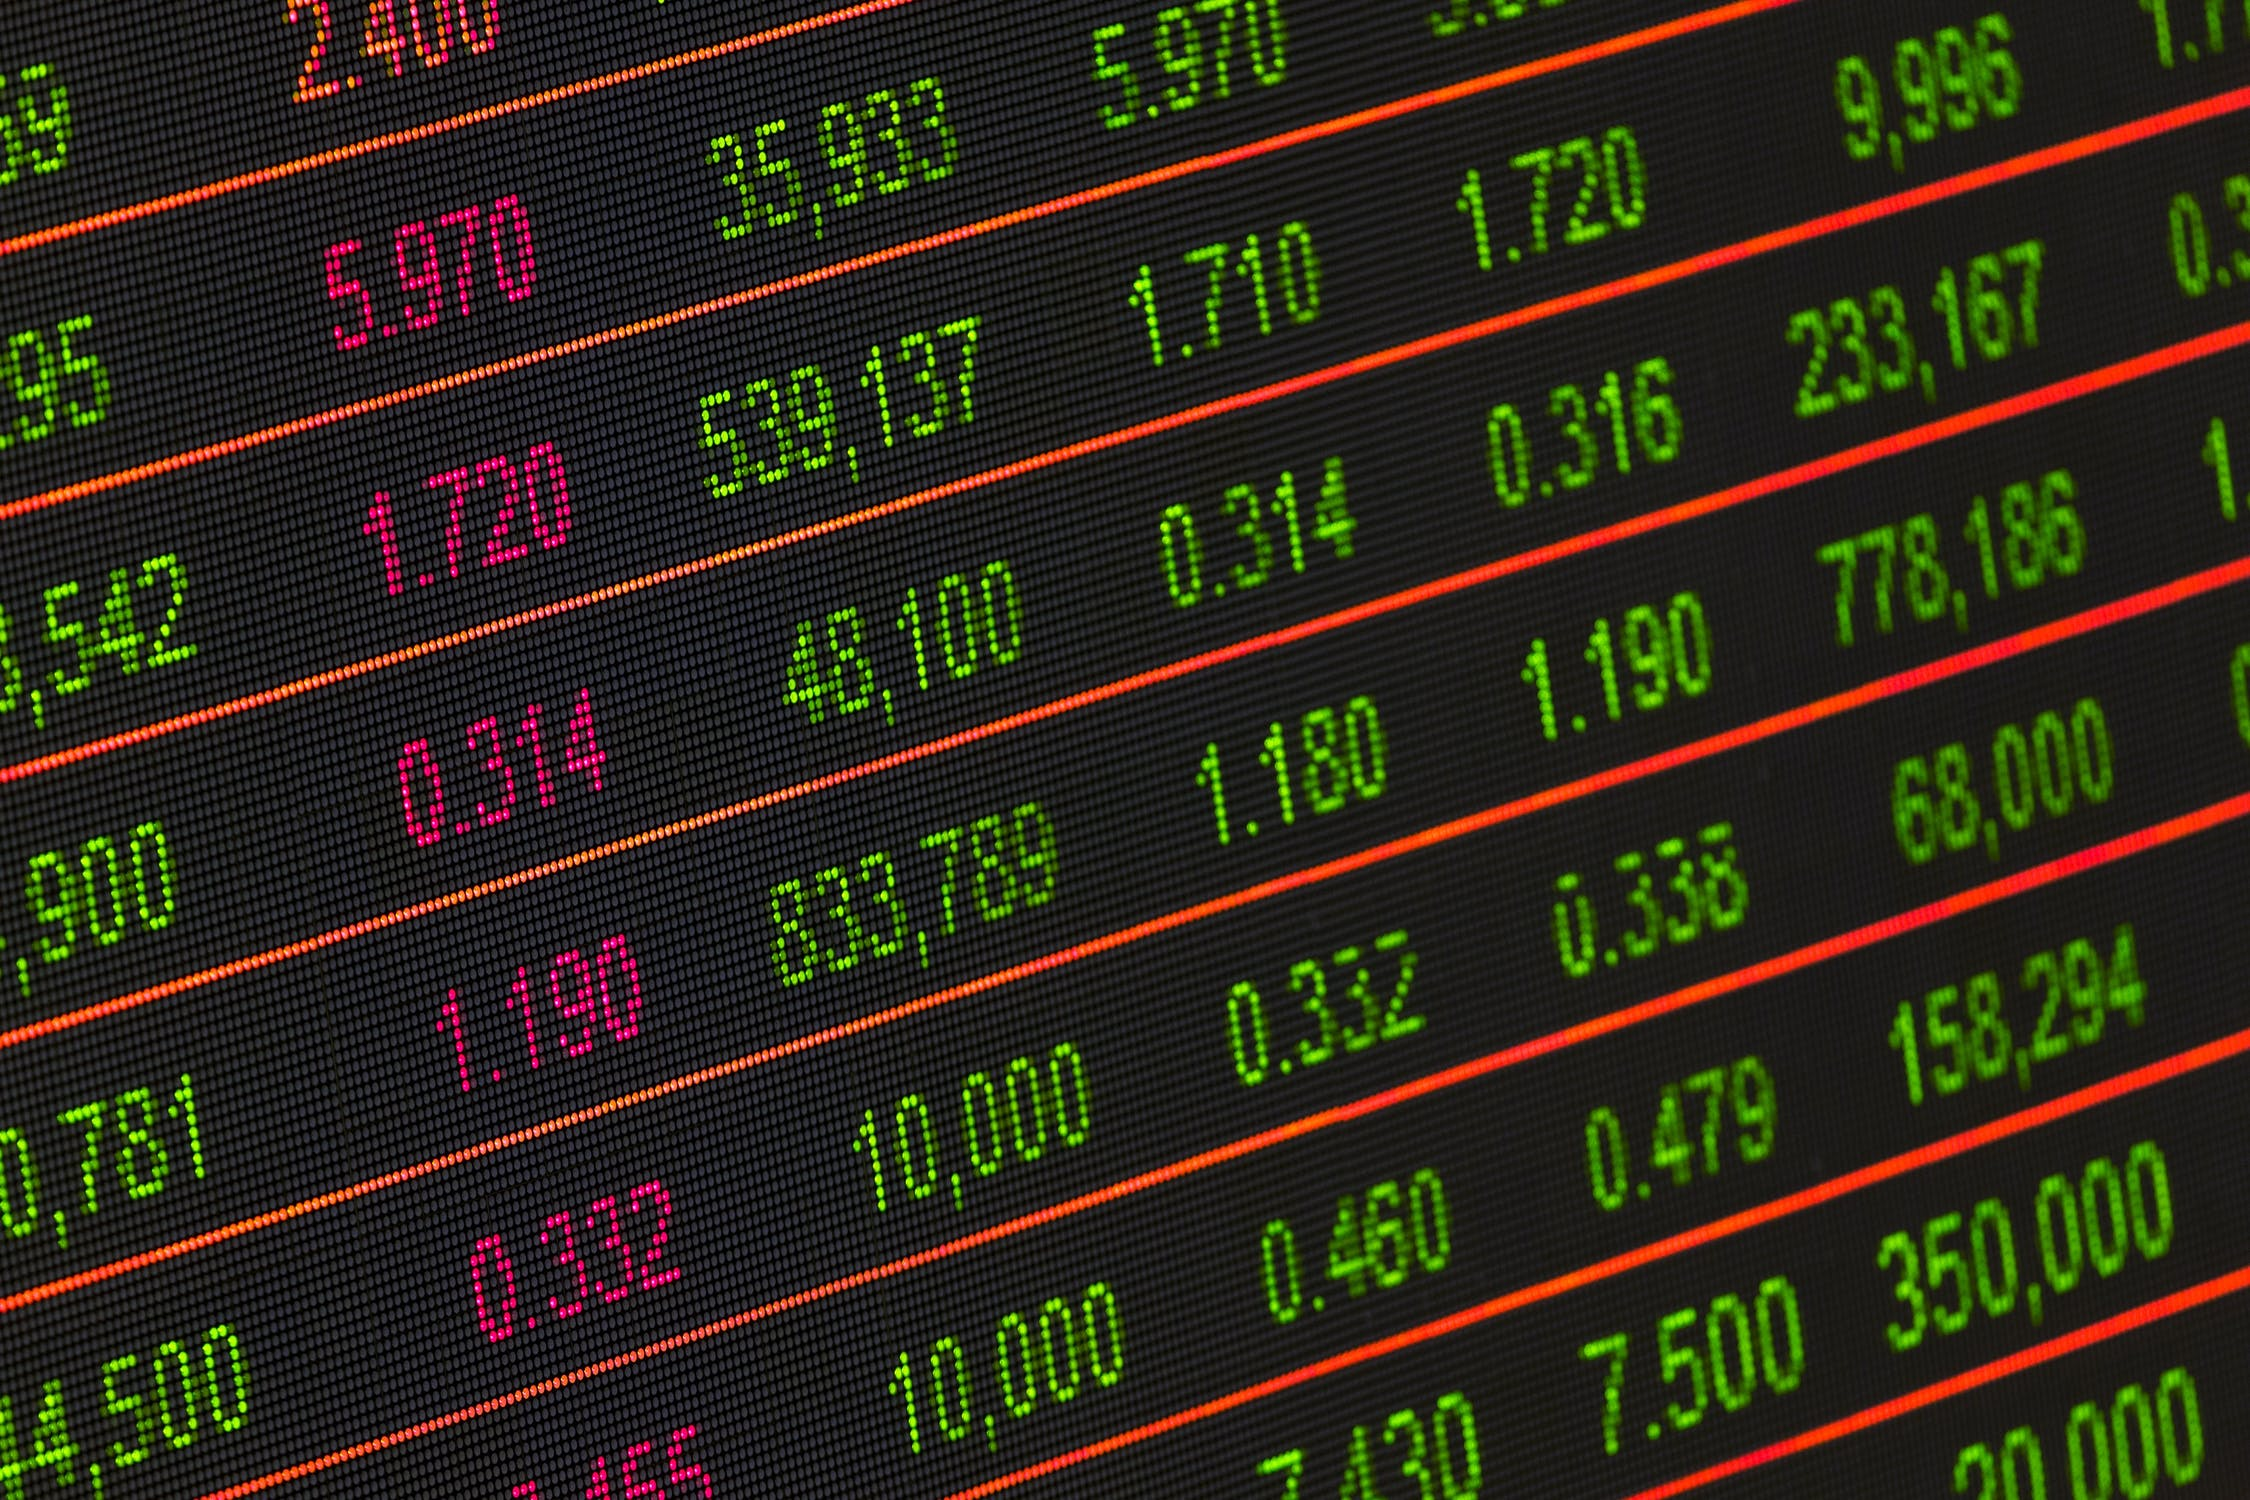 Synthetic indices in south Africa